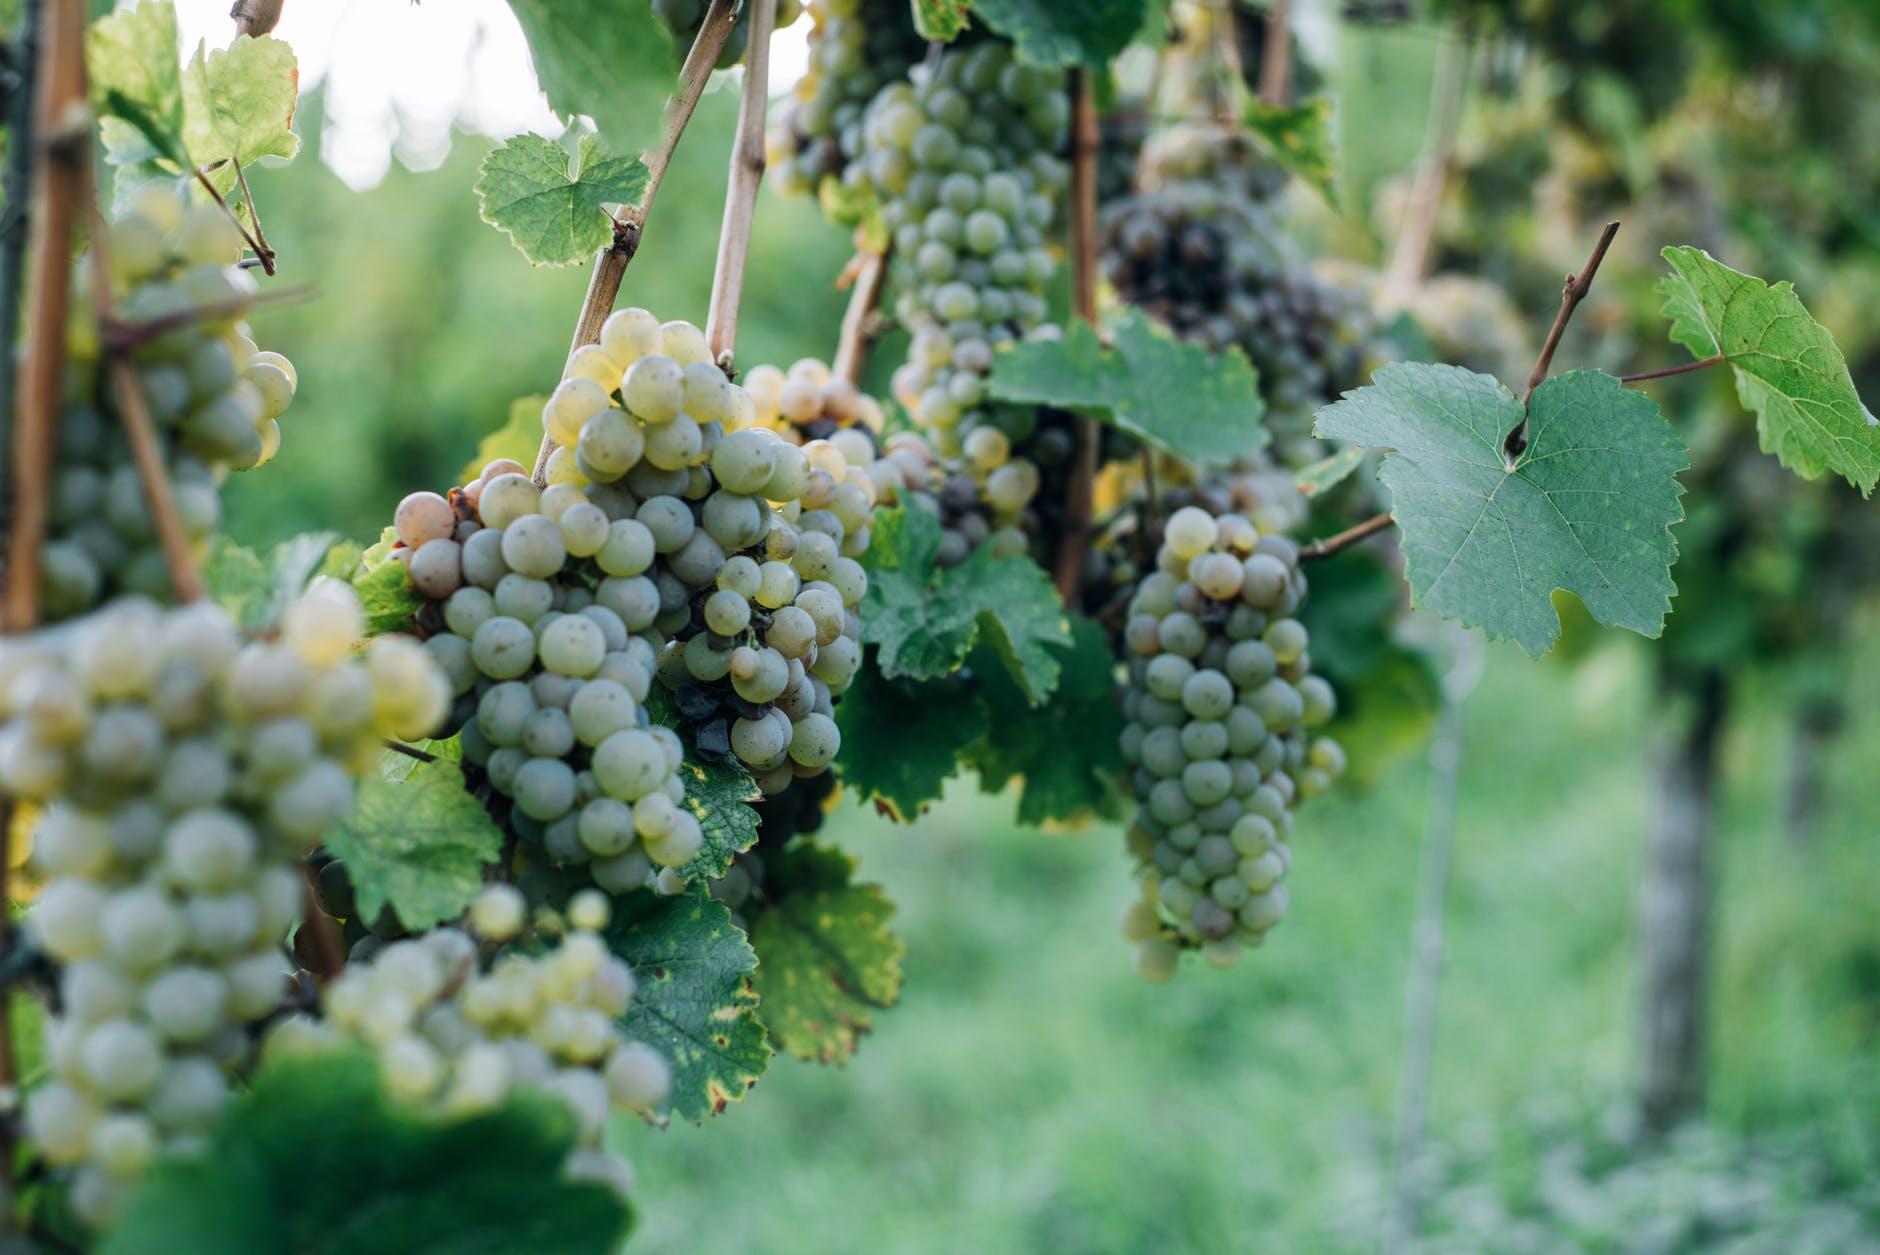 ripe grapes with leaves on vine